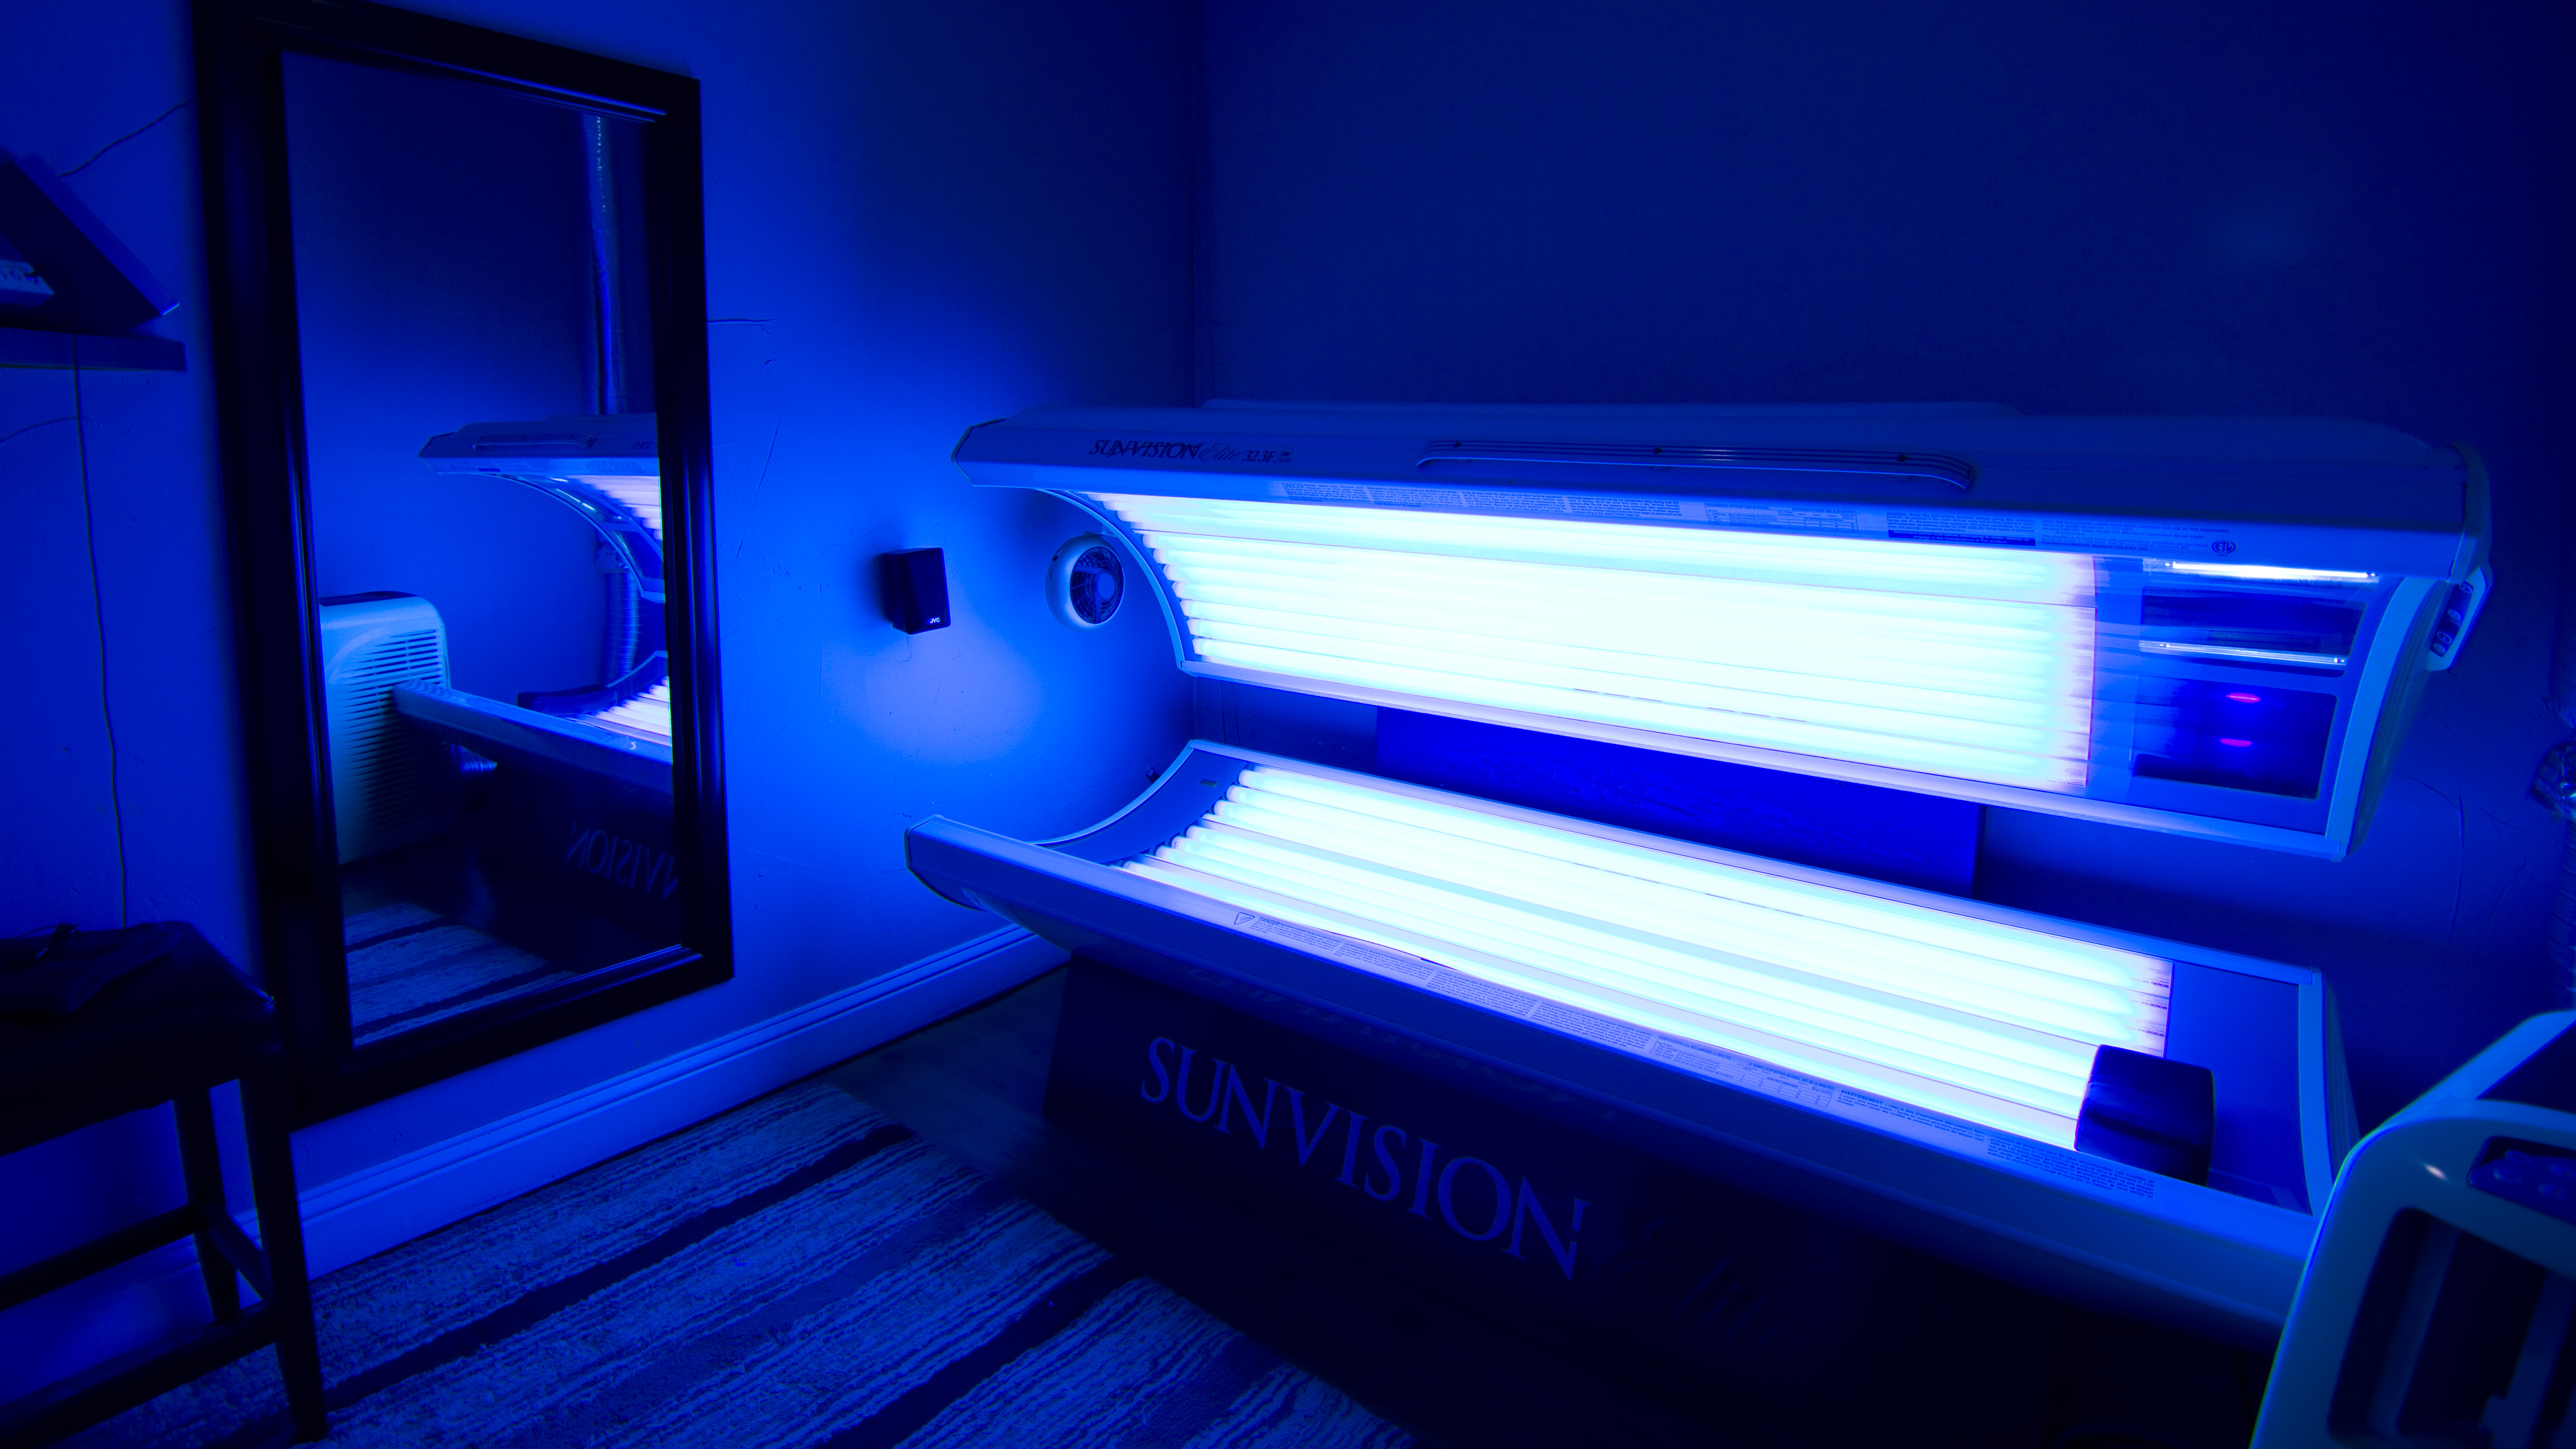 View of tanning room number 2, with our lay down tanning bed in the open position and bulbs on.